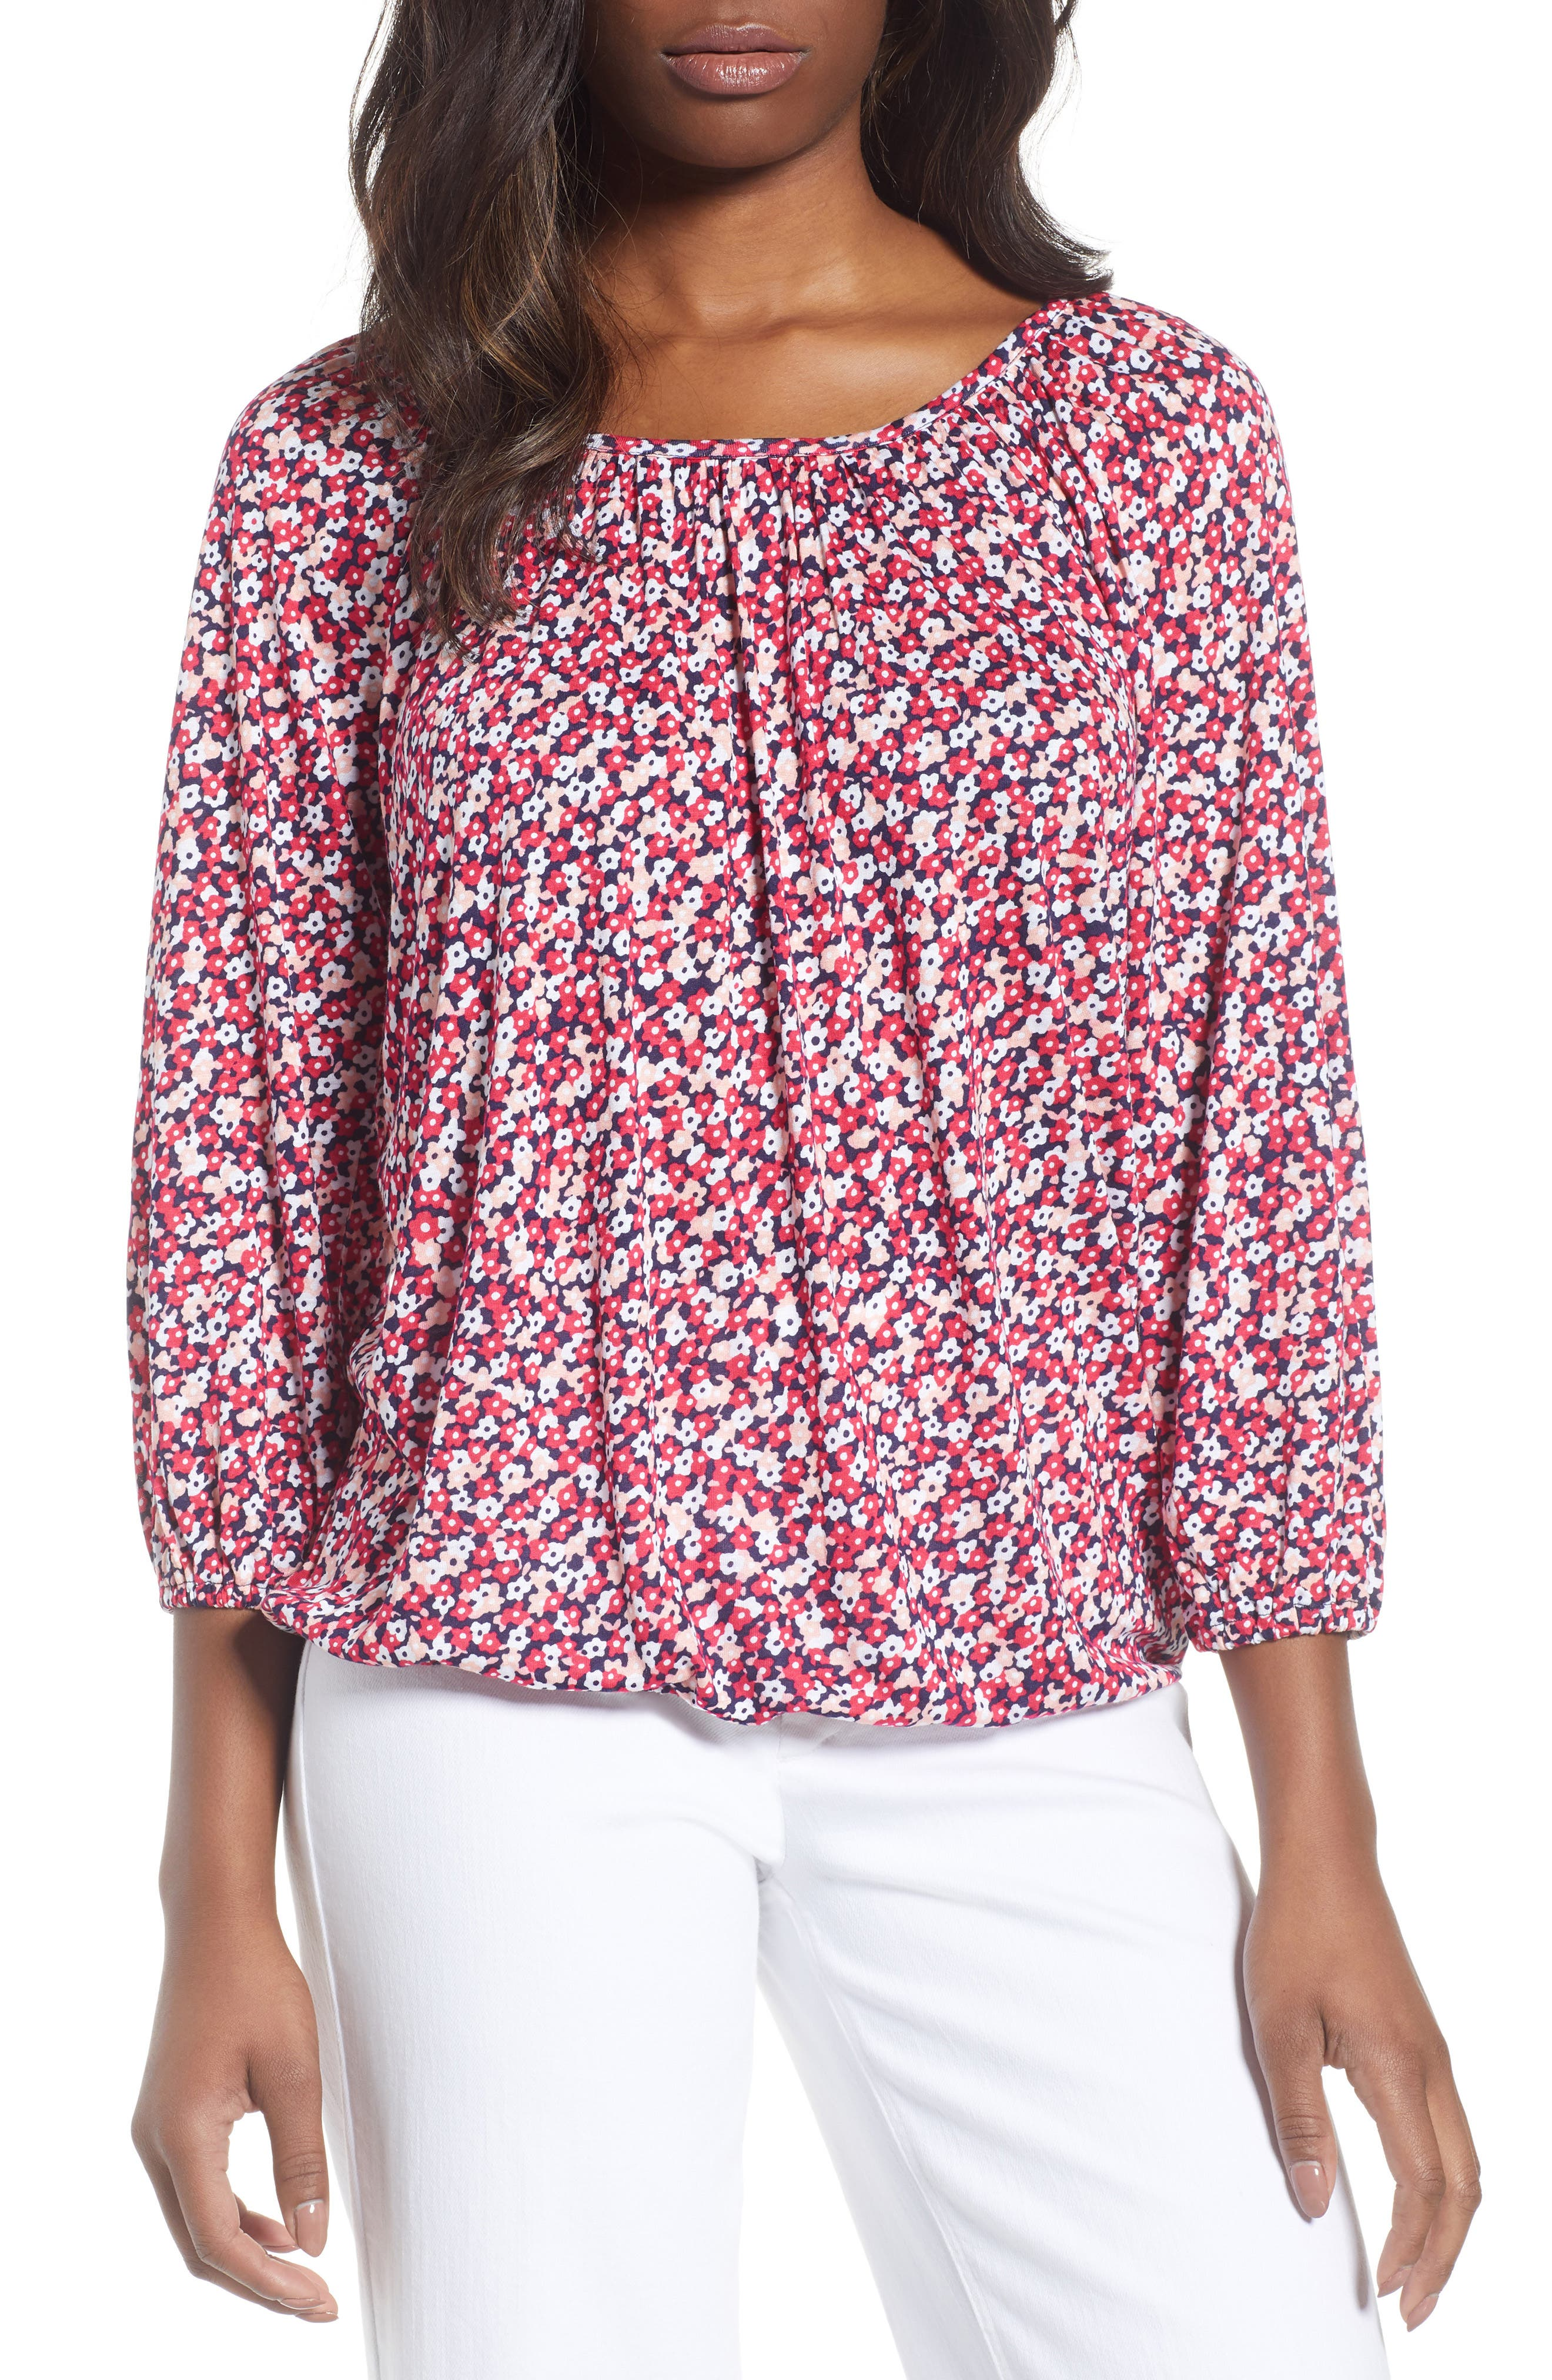 Collage Floral Print Peasant Top,                         Main,                         color, True Navy/ Bright Blush